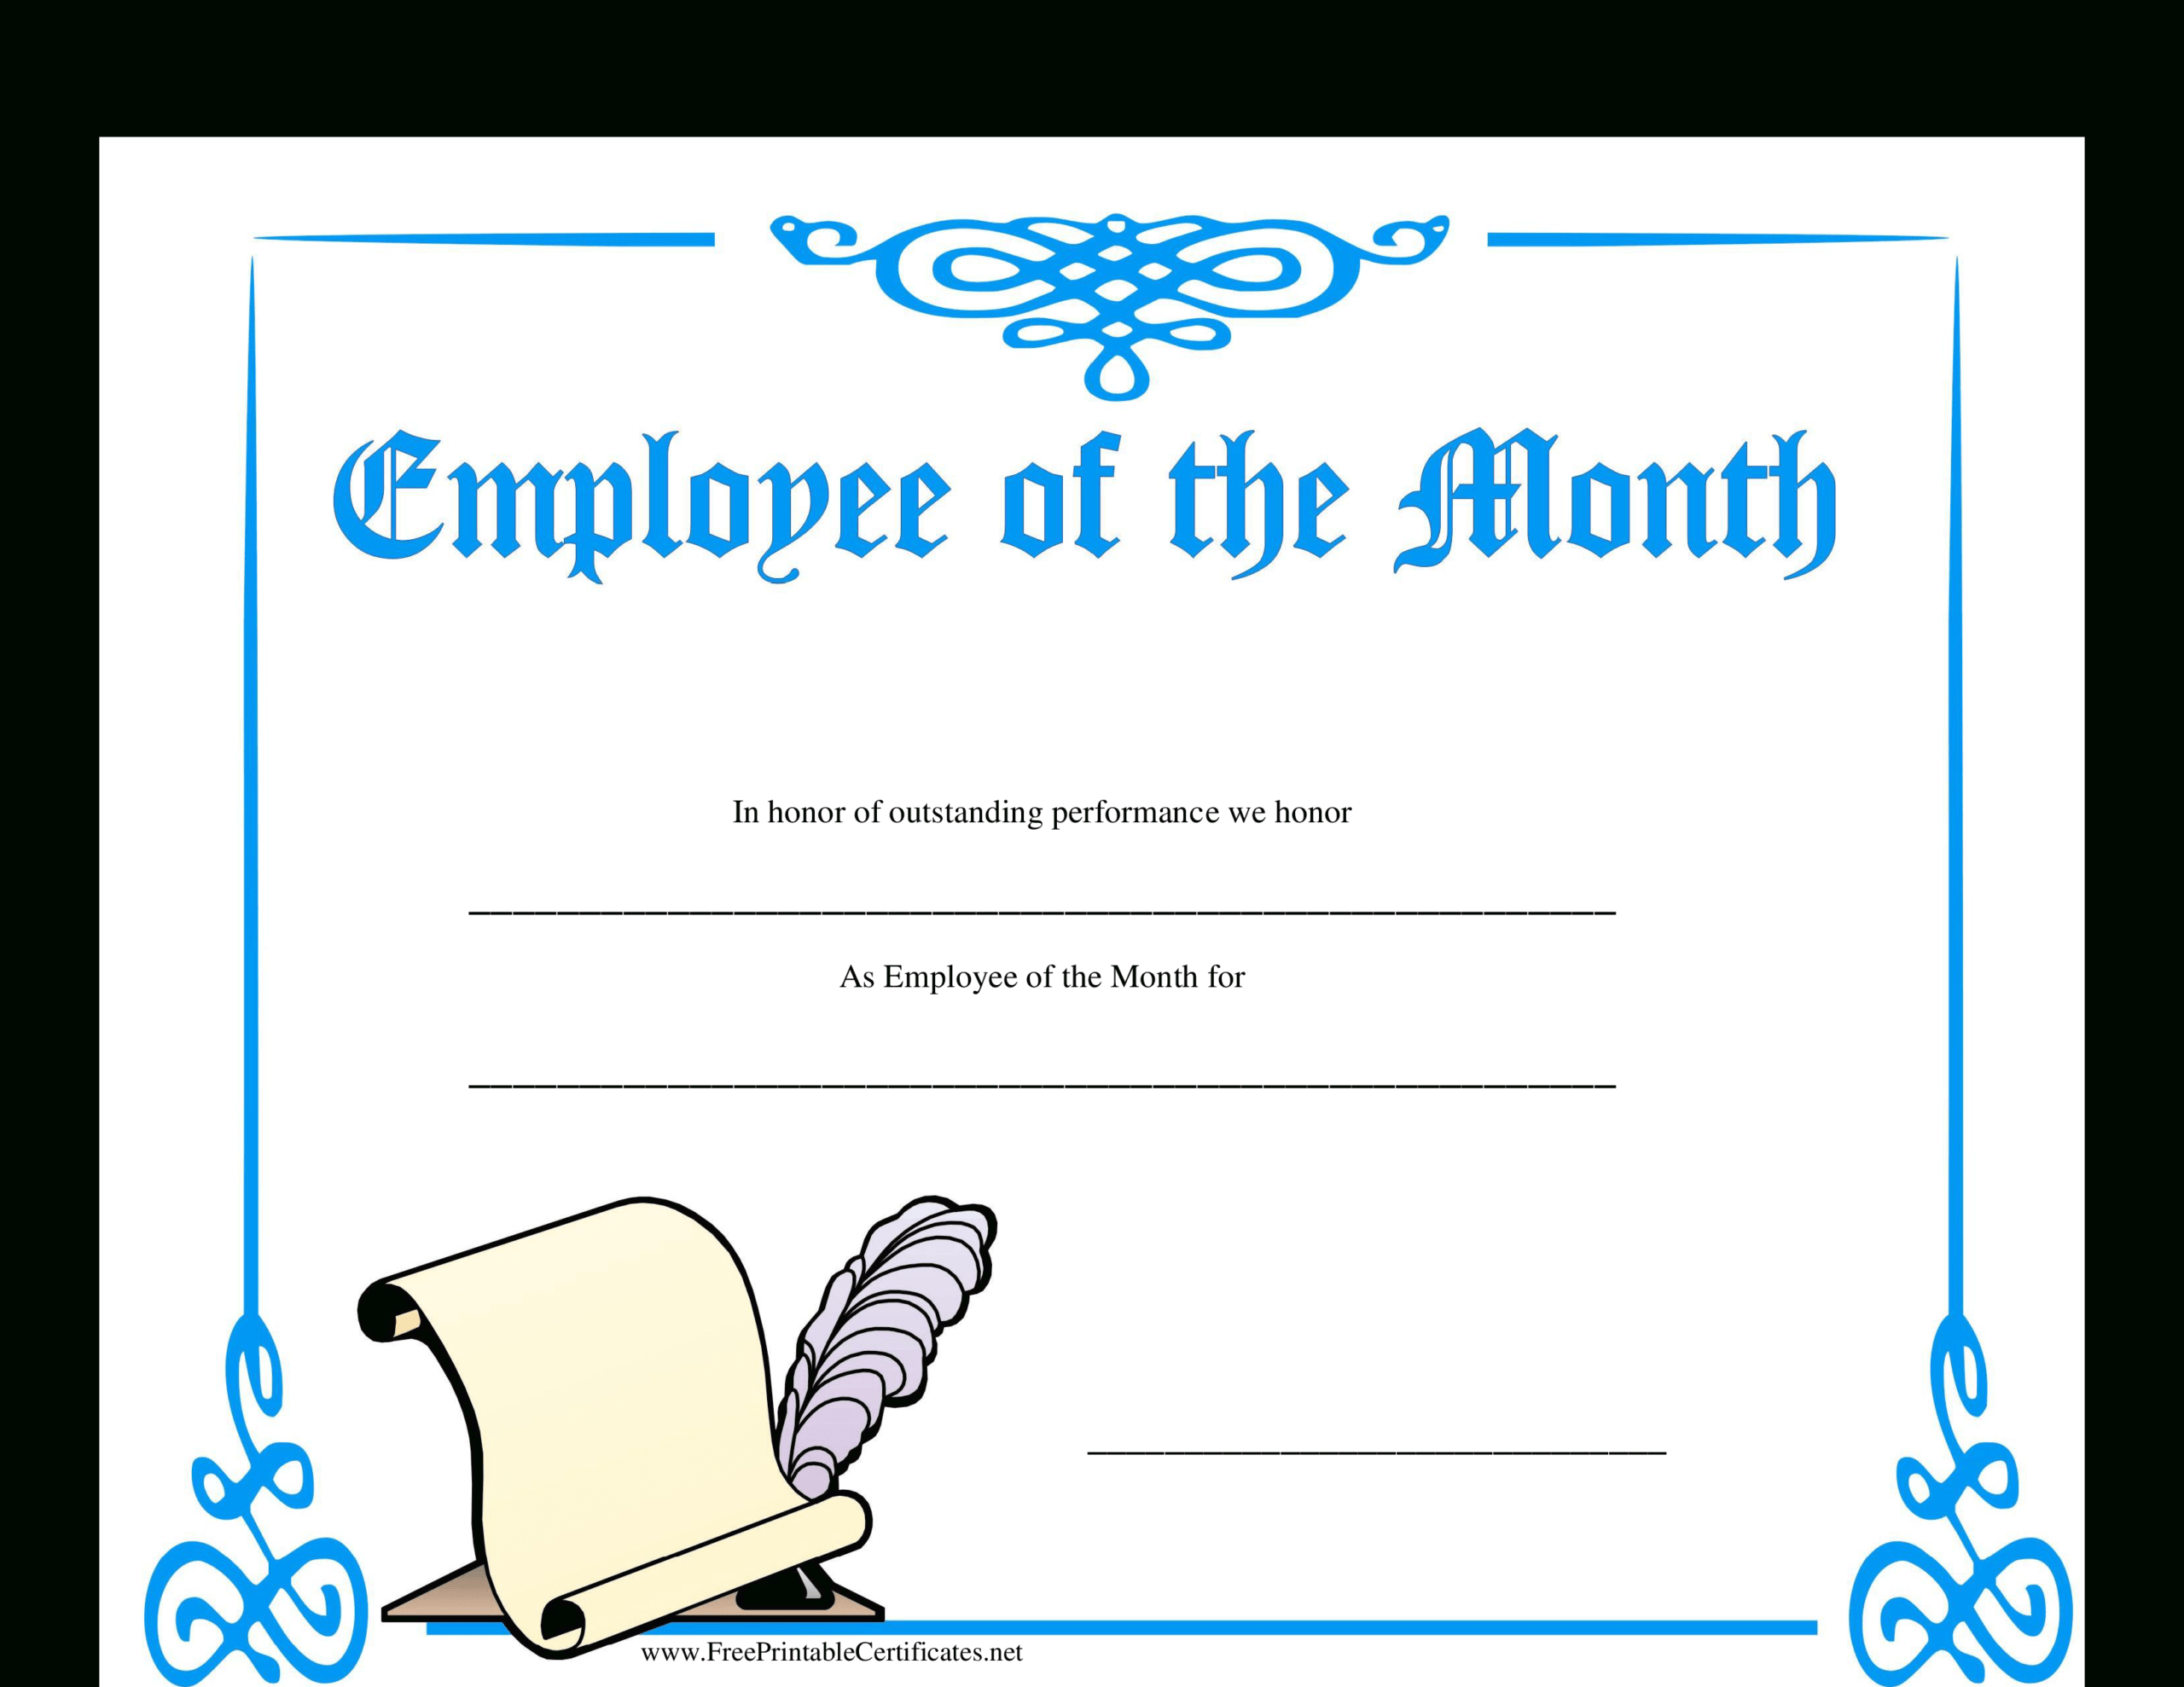 Employee Of The Month Certificate | Templates At Inside Employee Of The Month Certificate Template With Picture